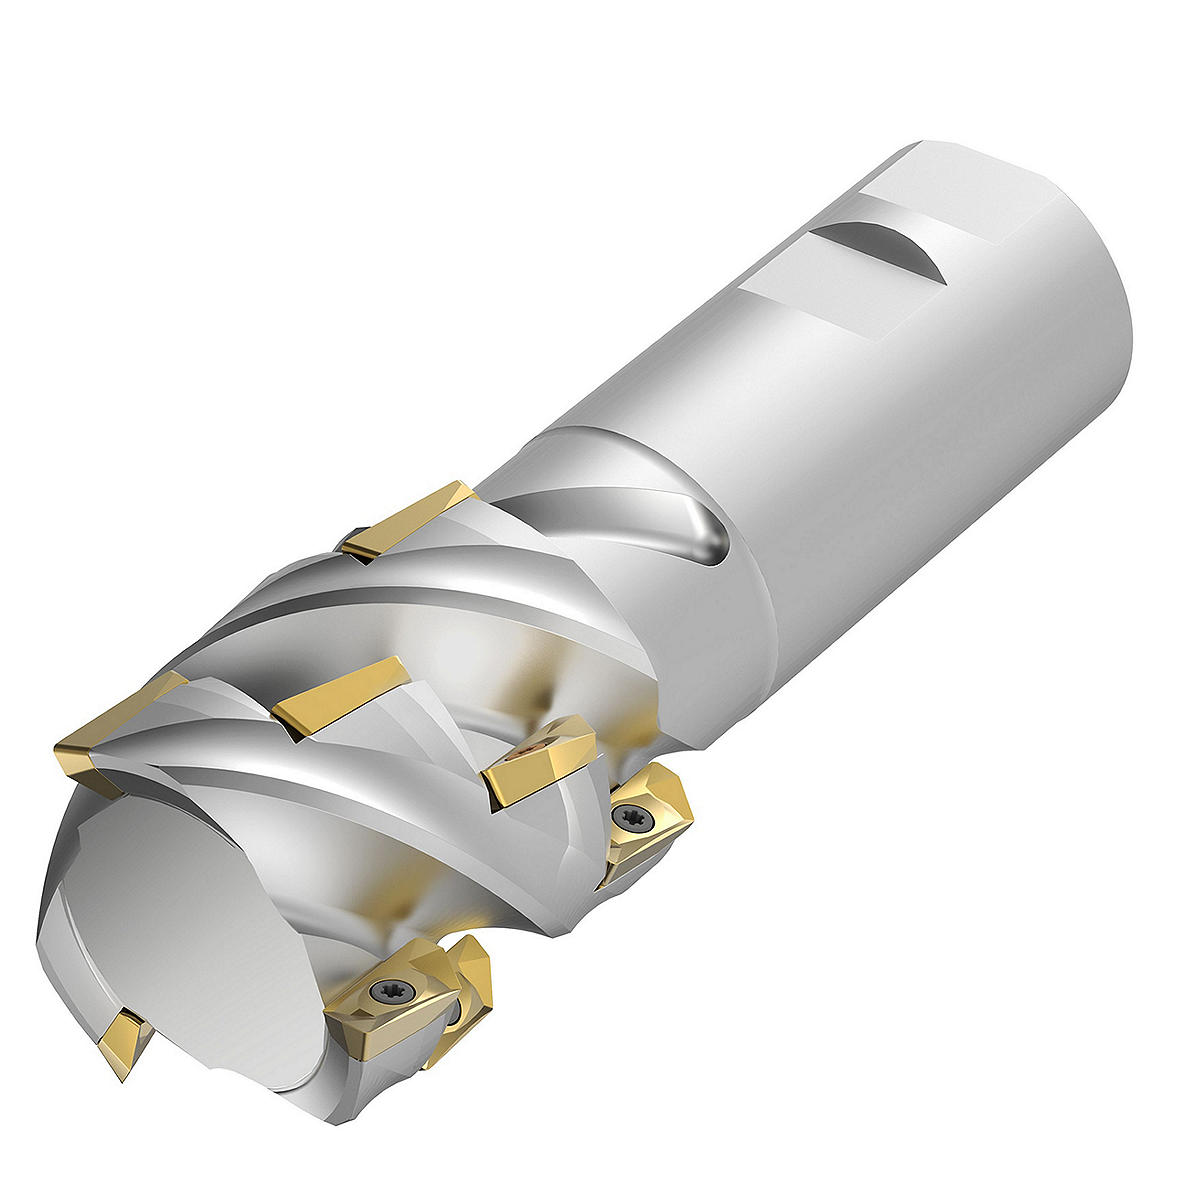 Helical End Mills